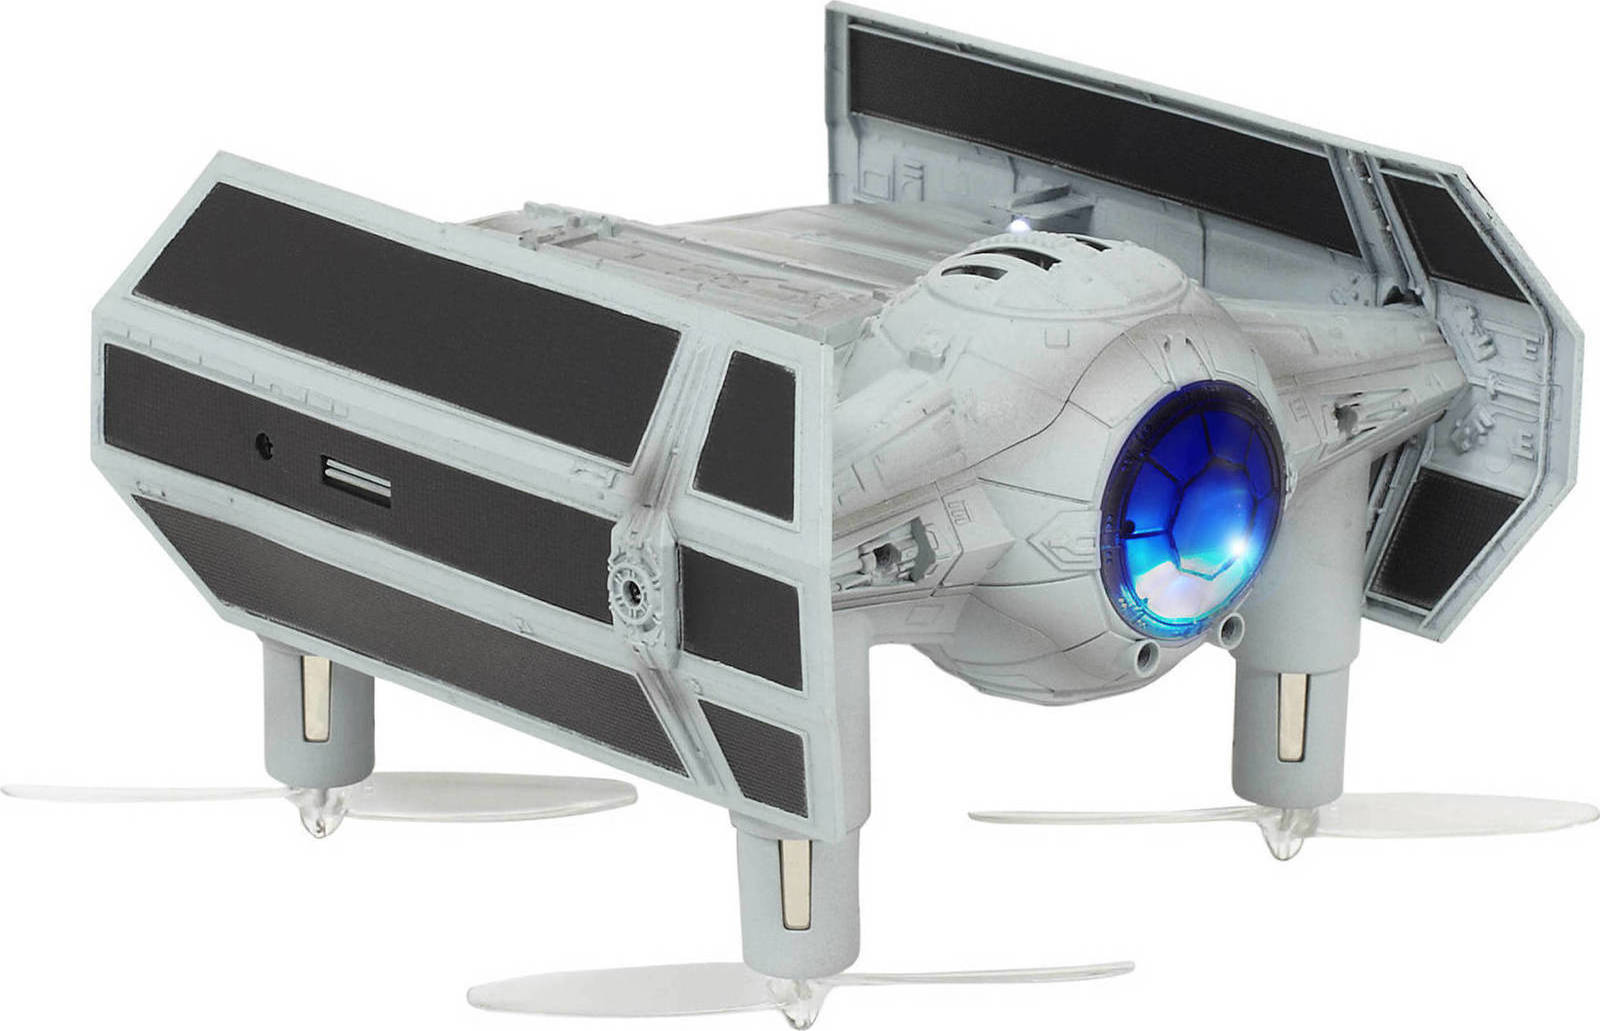 Propel Star Wars Tie Advanced X1 Drone Πληρωμή έως 12 δόσεις